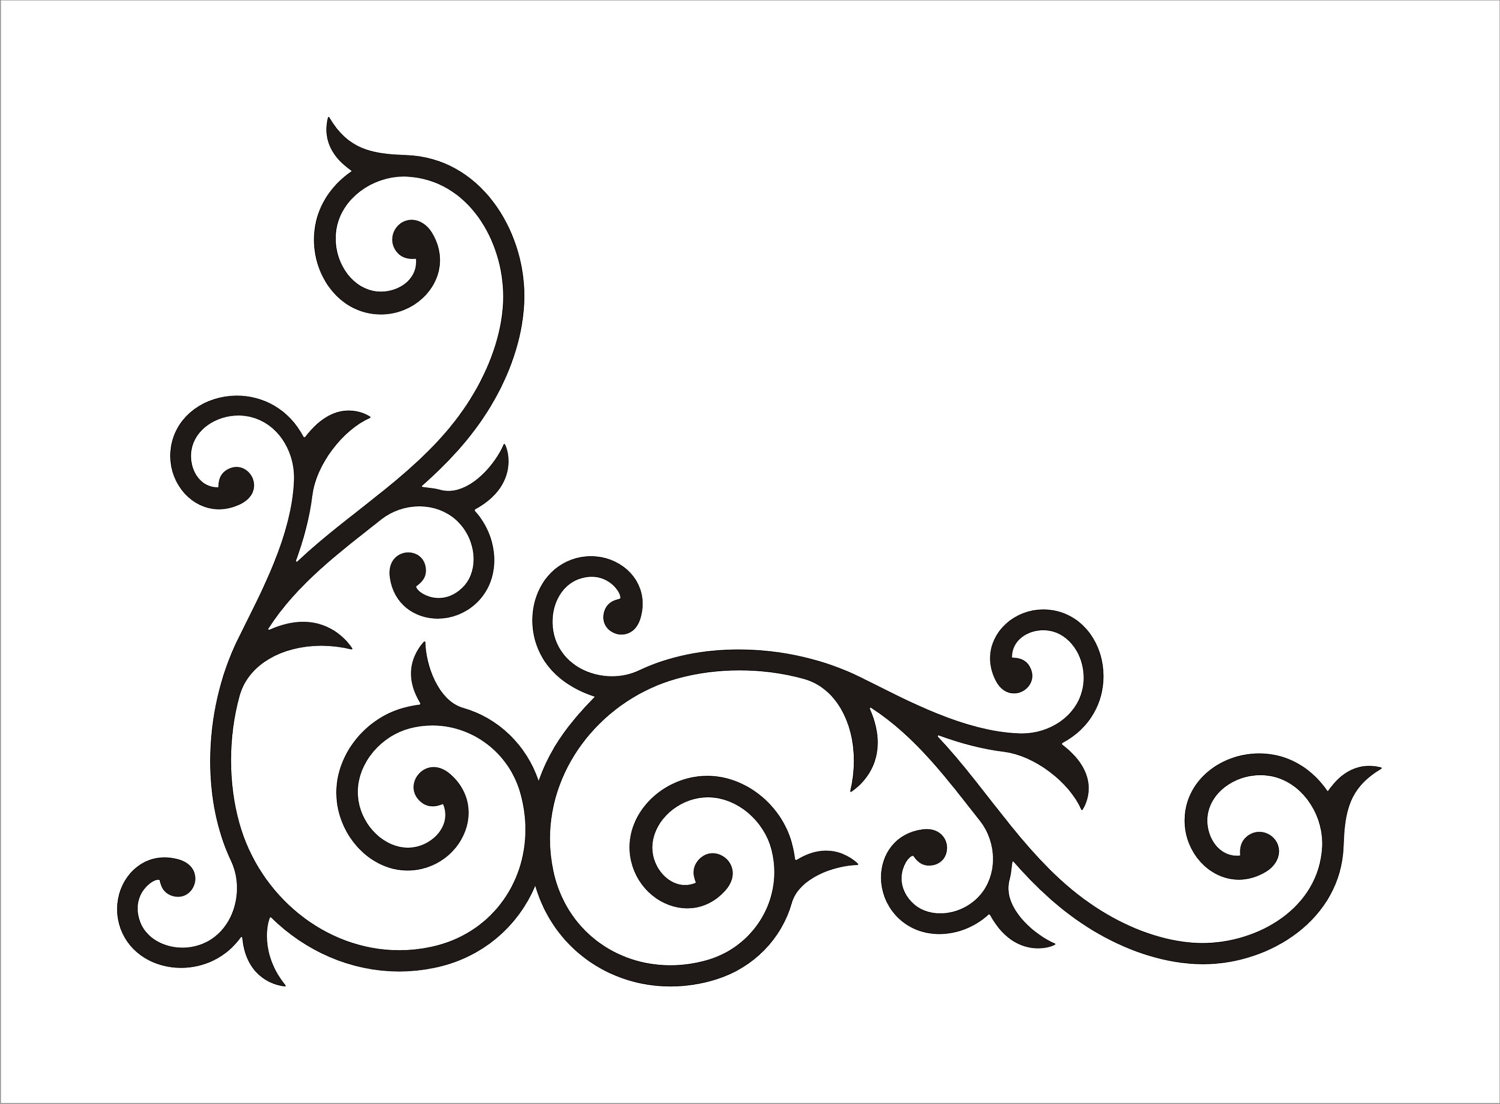 hight resolution of scrollwork free clip art borders scroll clipart images 2 2